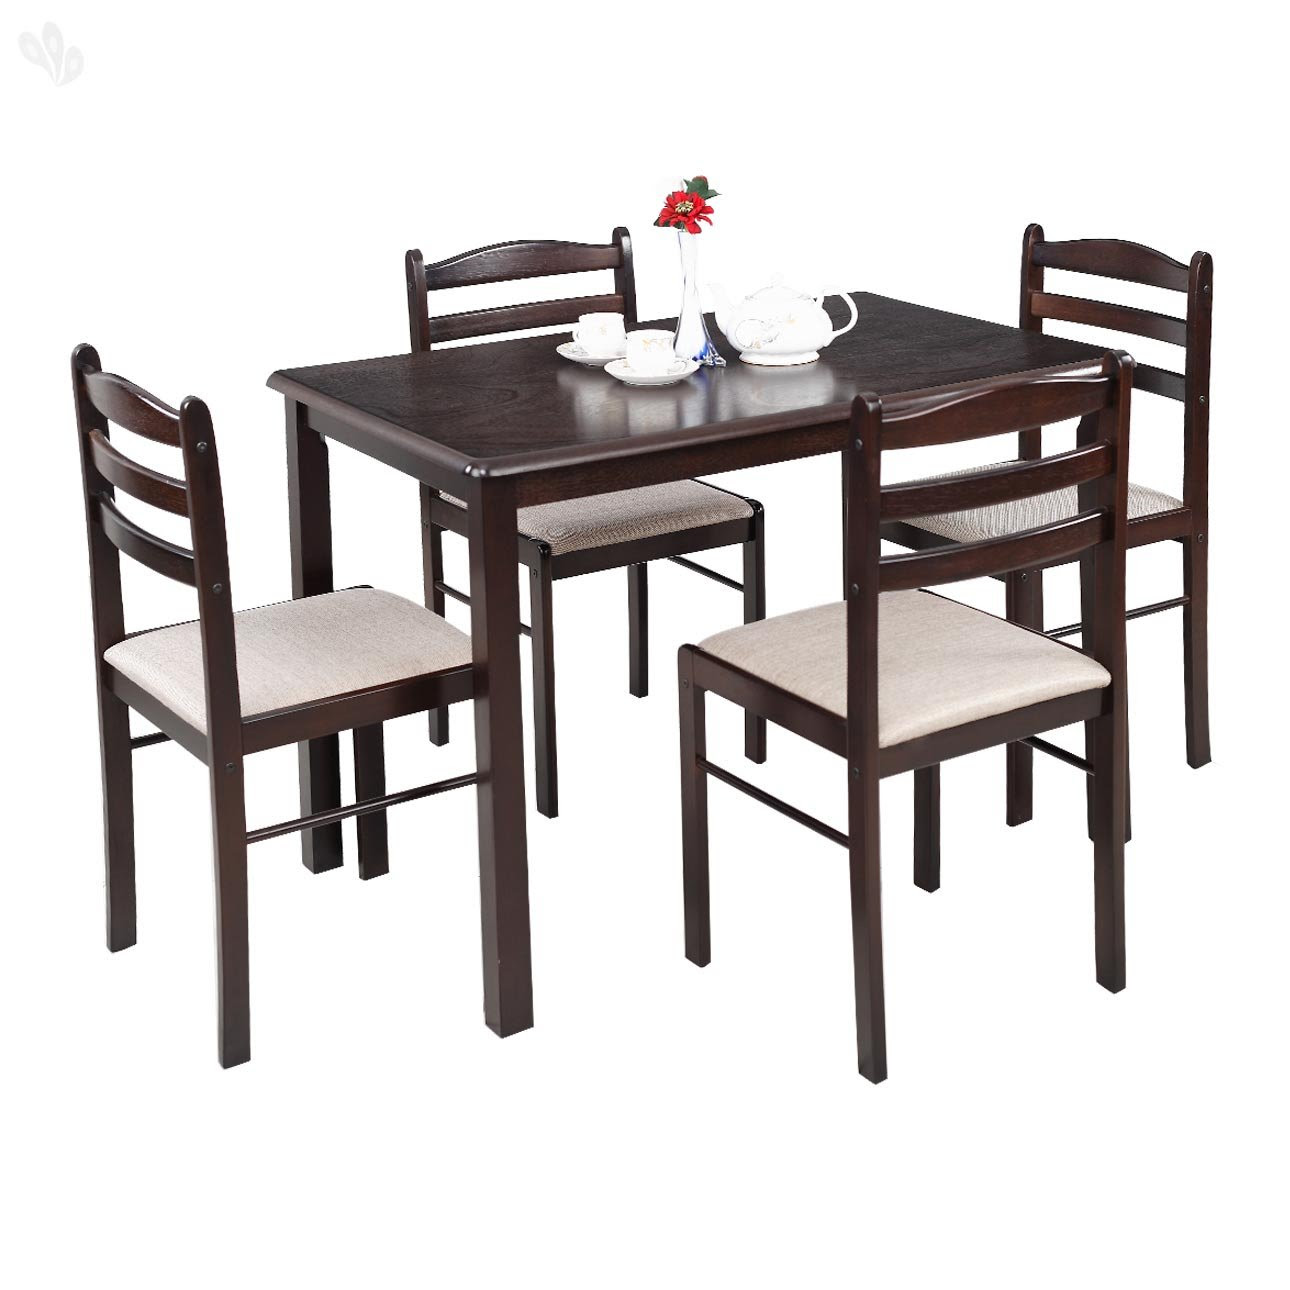 Royal Oak Hunter Four Seater Dining Table Set Dark Brown  Best Home and Kitchen Store